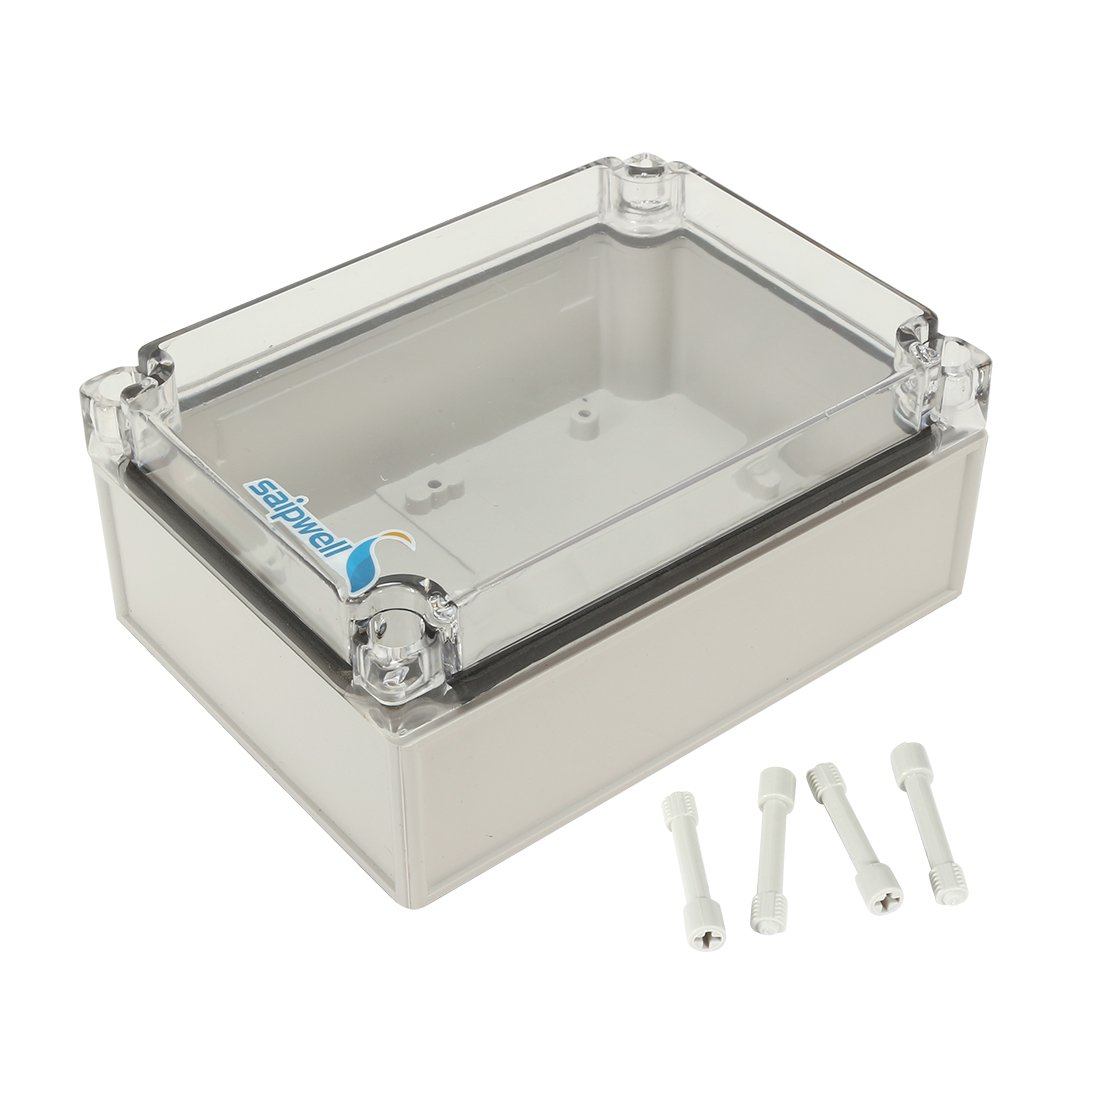 uxcell 4.9''x6.9''x2.94''(125mmx175mmx75mm) ABS Junction Box Universal Project Enclosure w PC Transparent Cover